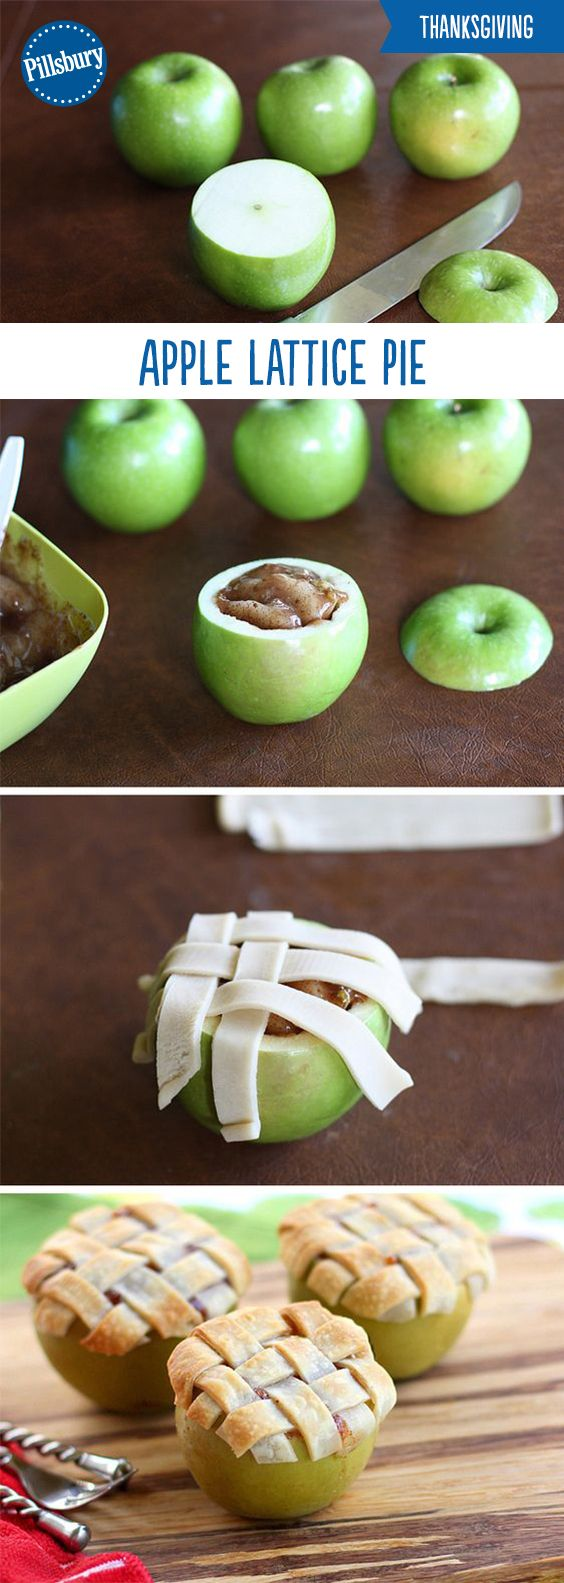 Apple Lattice Pie Baked in an Apple.